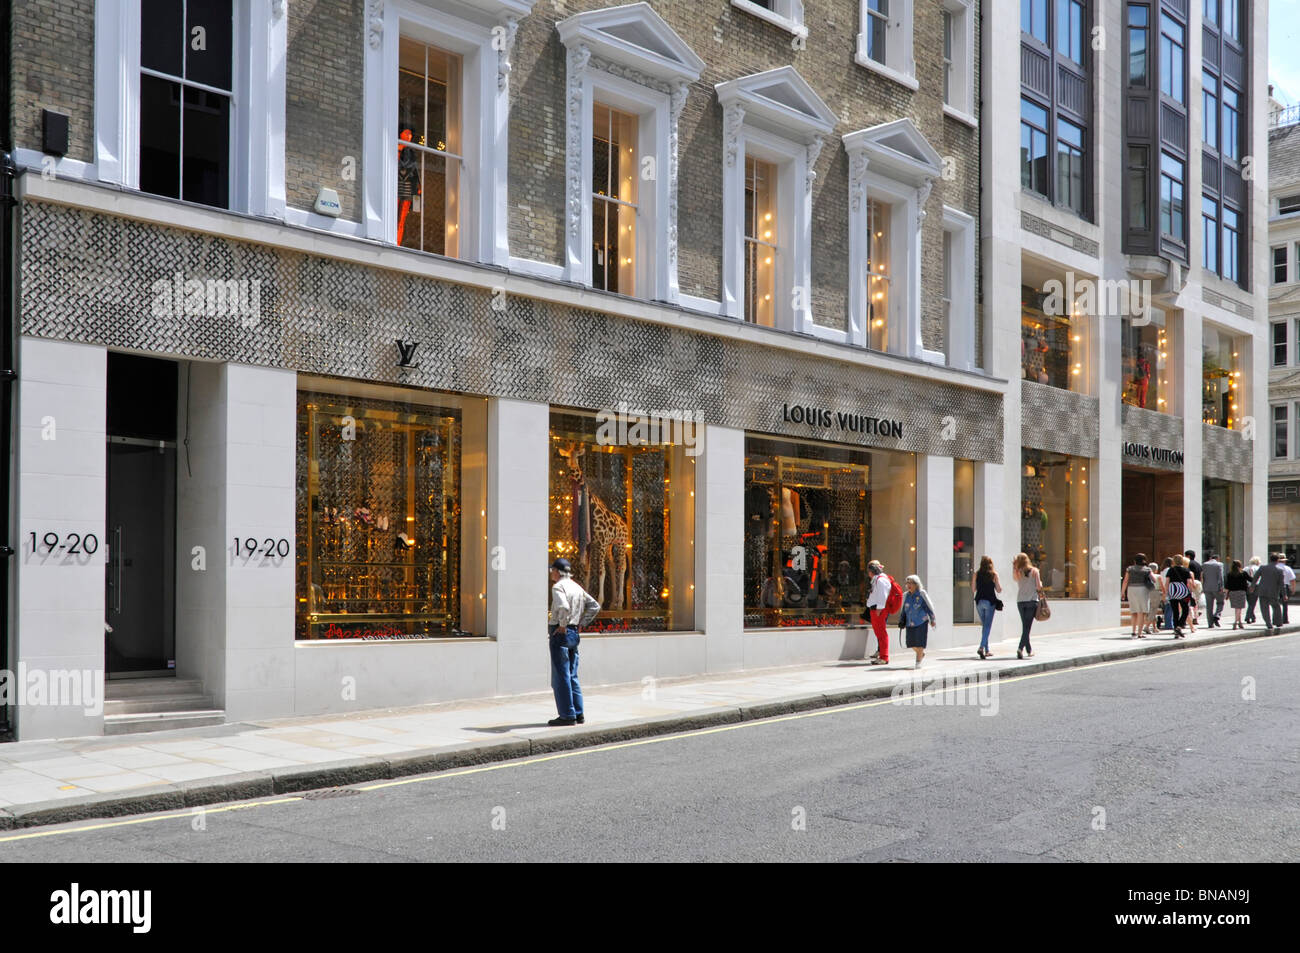 Louis Vuitton store front in London - Stock Image